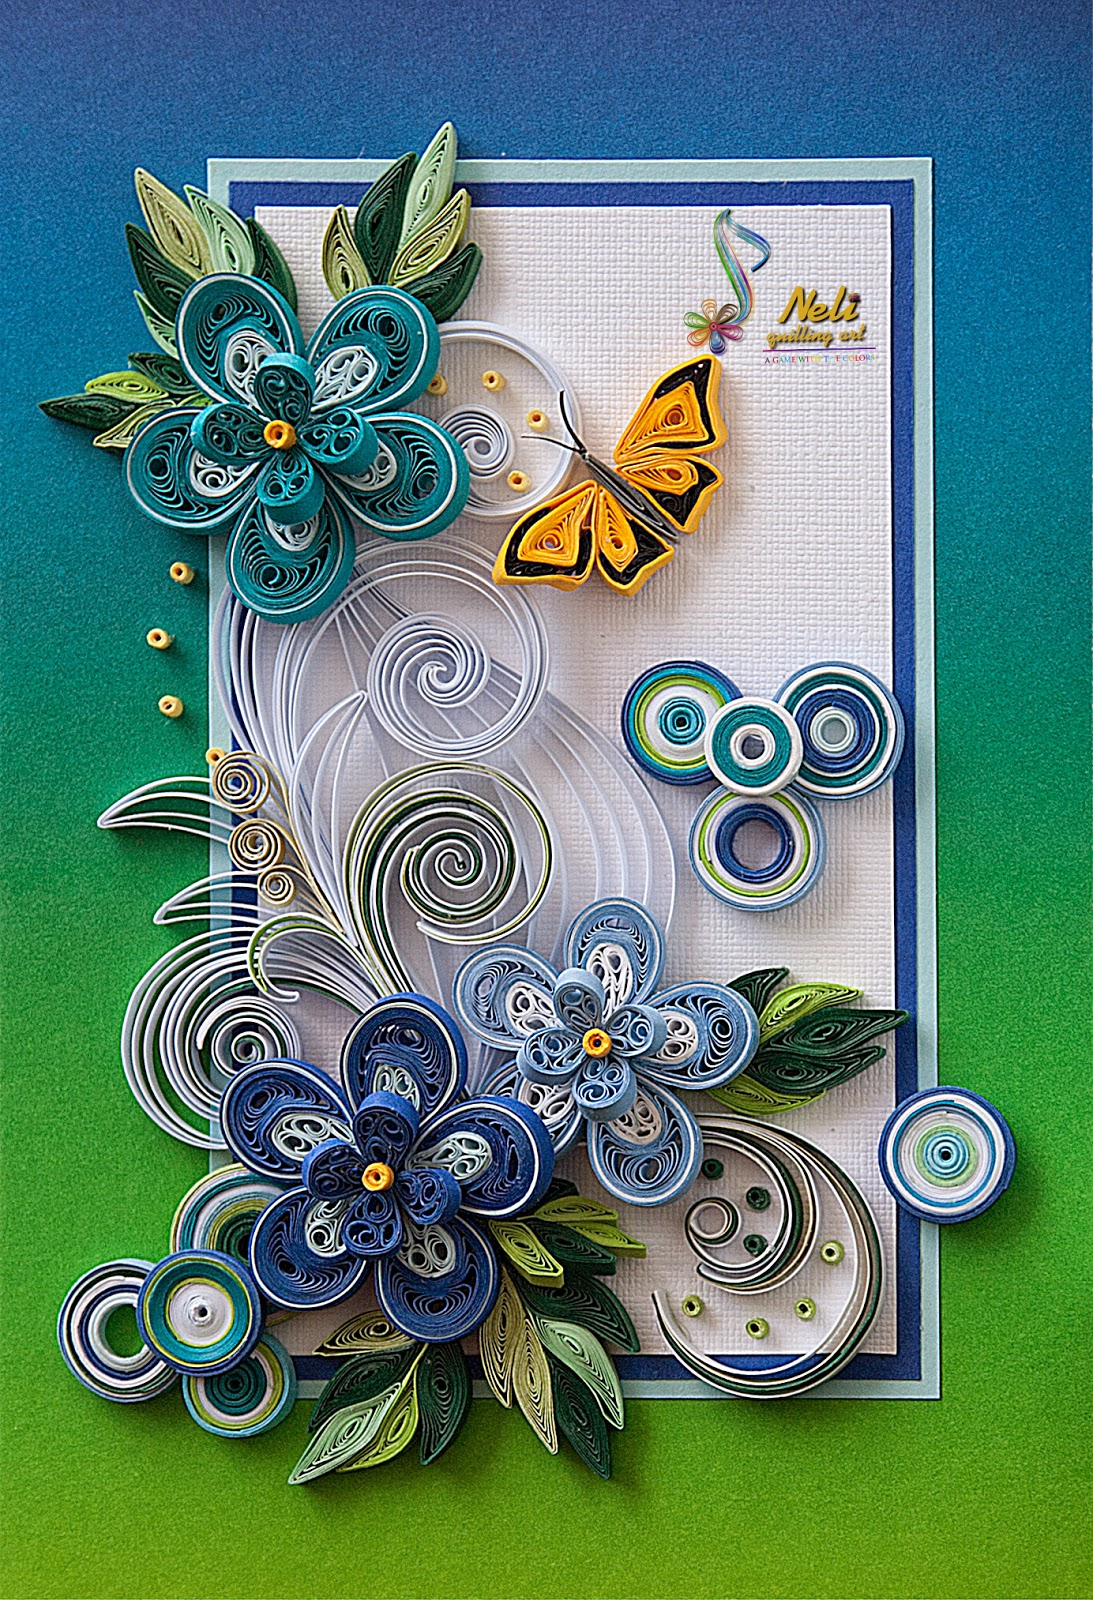 Neli quilling art quilling cards 14 8 cm 10 5 cm summer for Quilling paper art